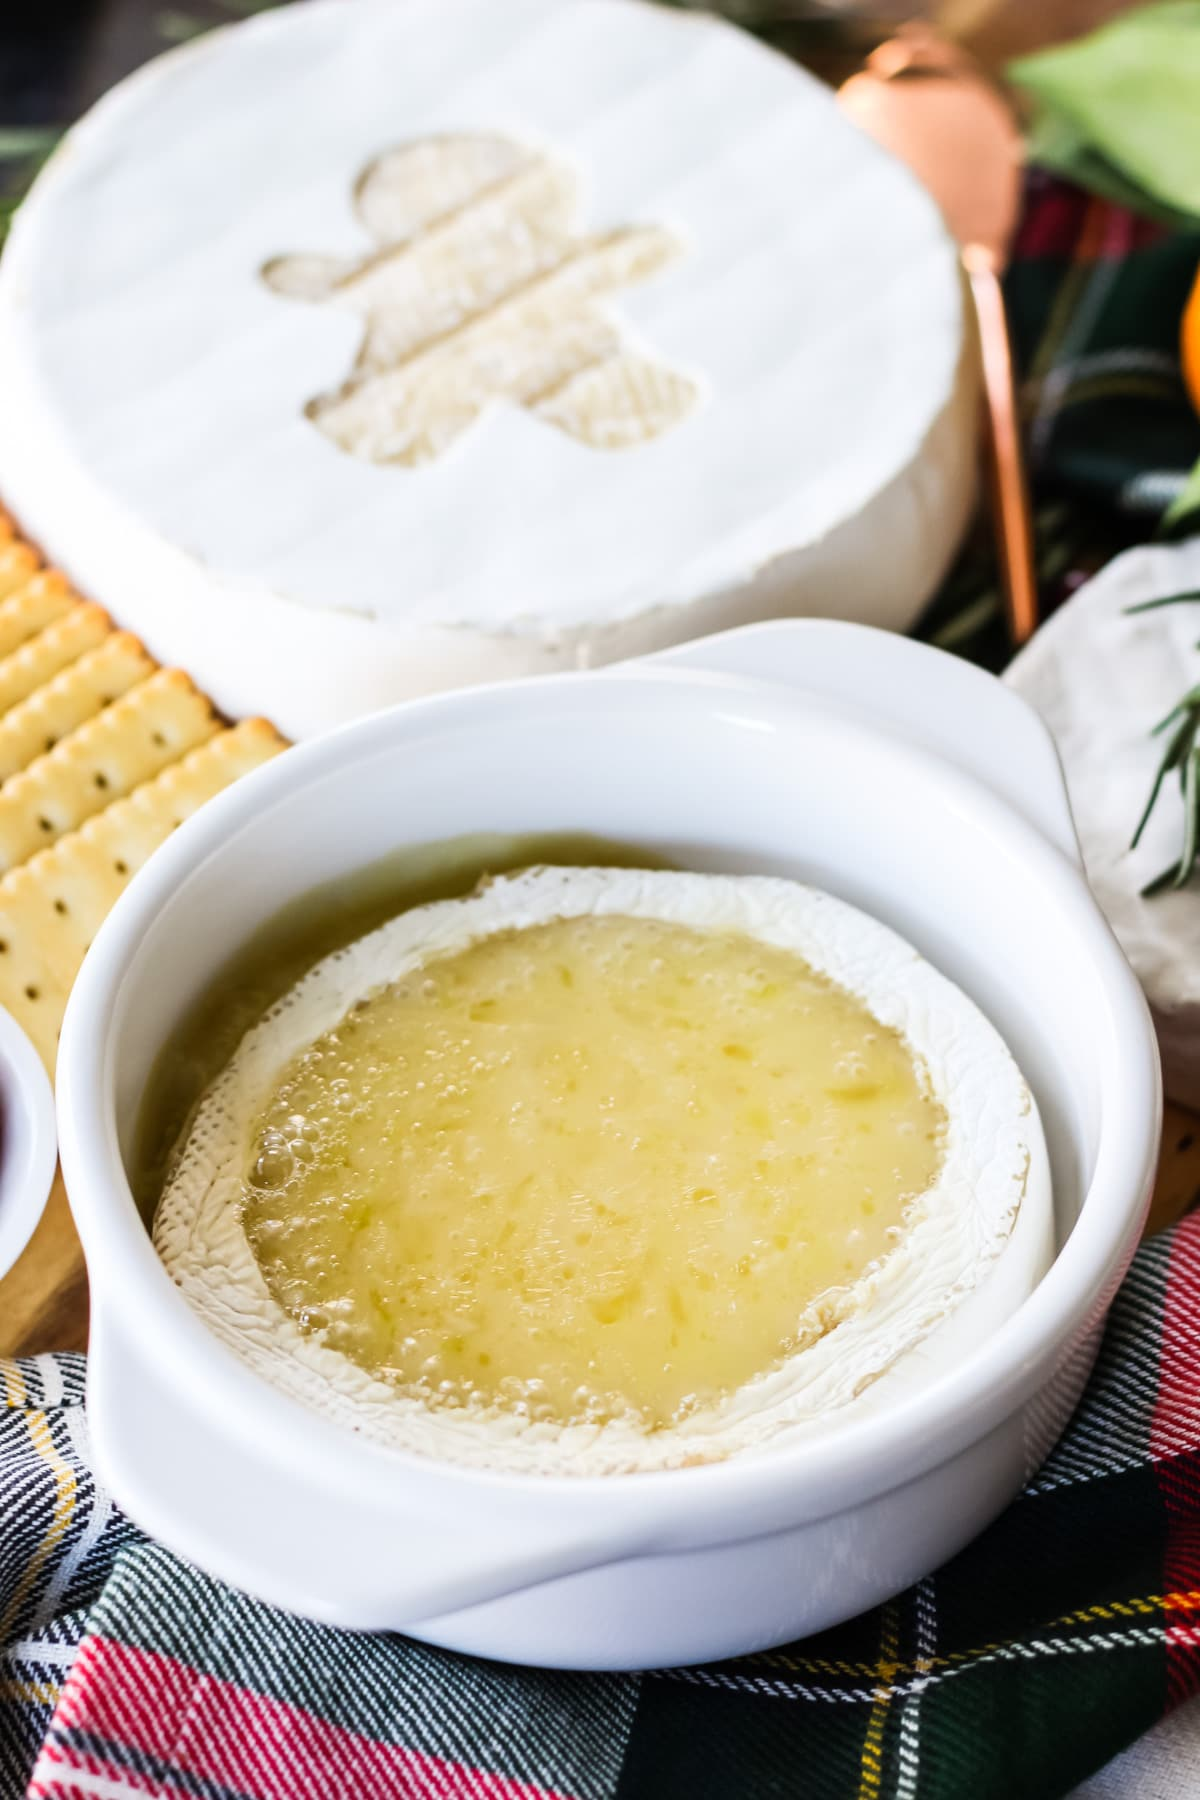 a baked Brie cheese wheel with the rind removed and turned into a fondue